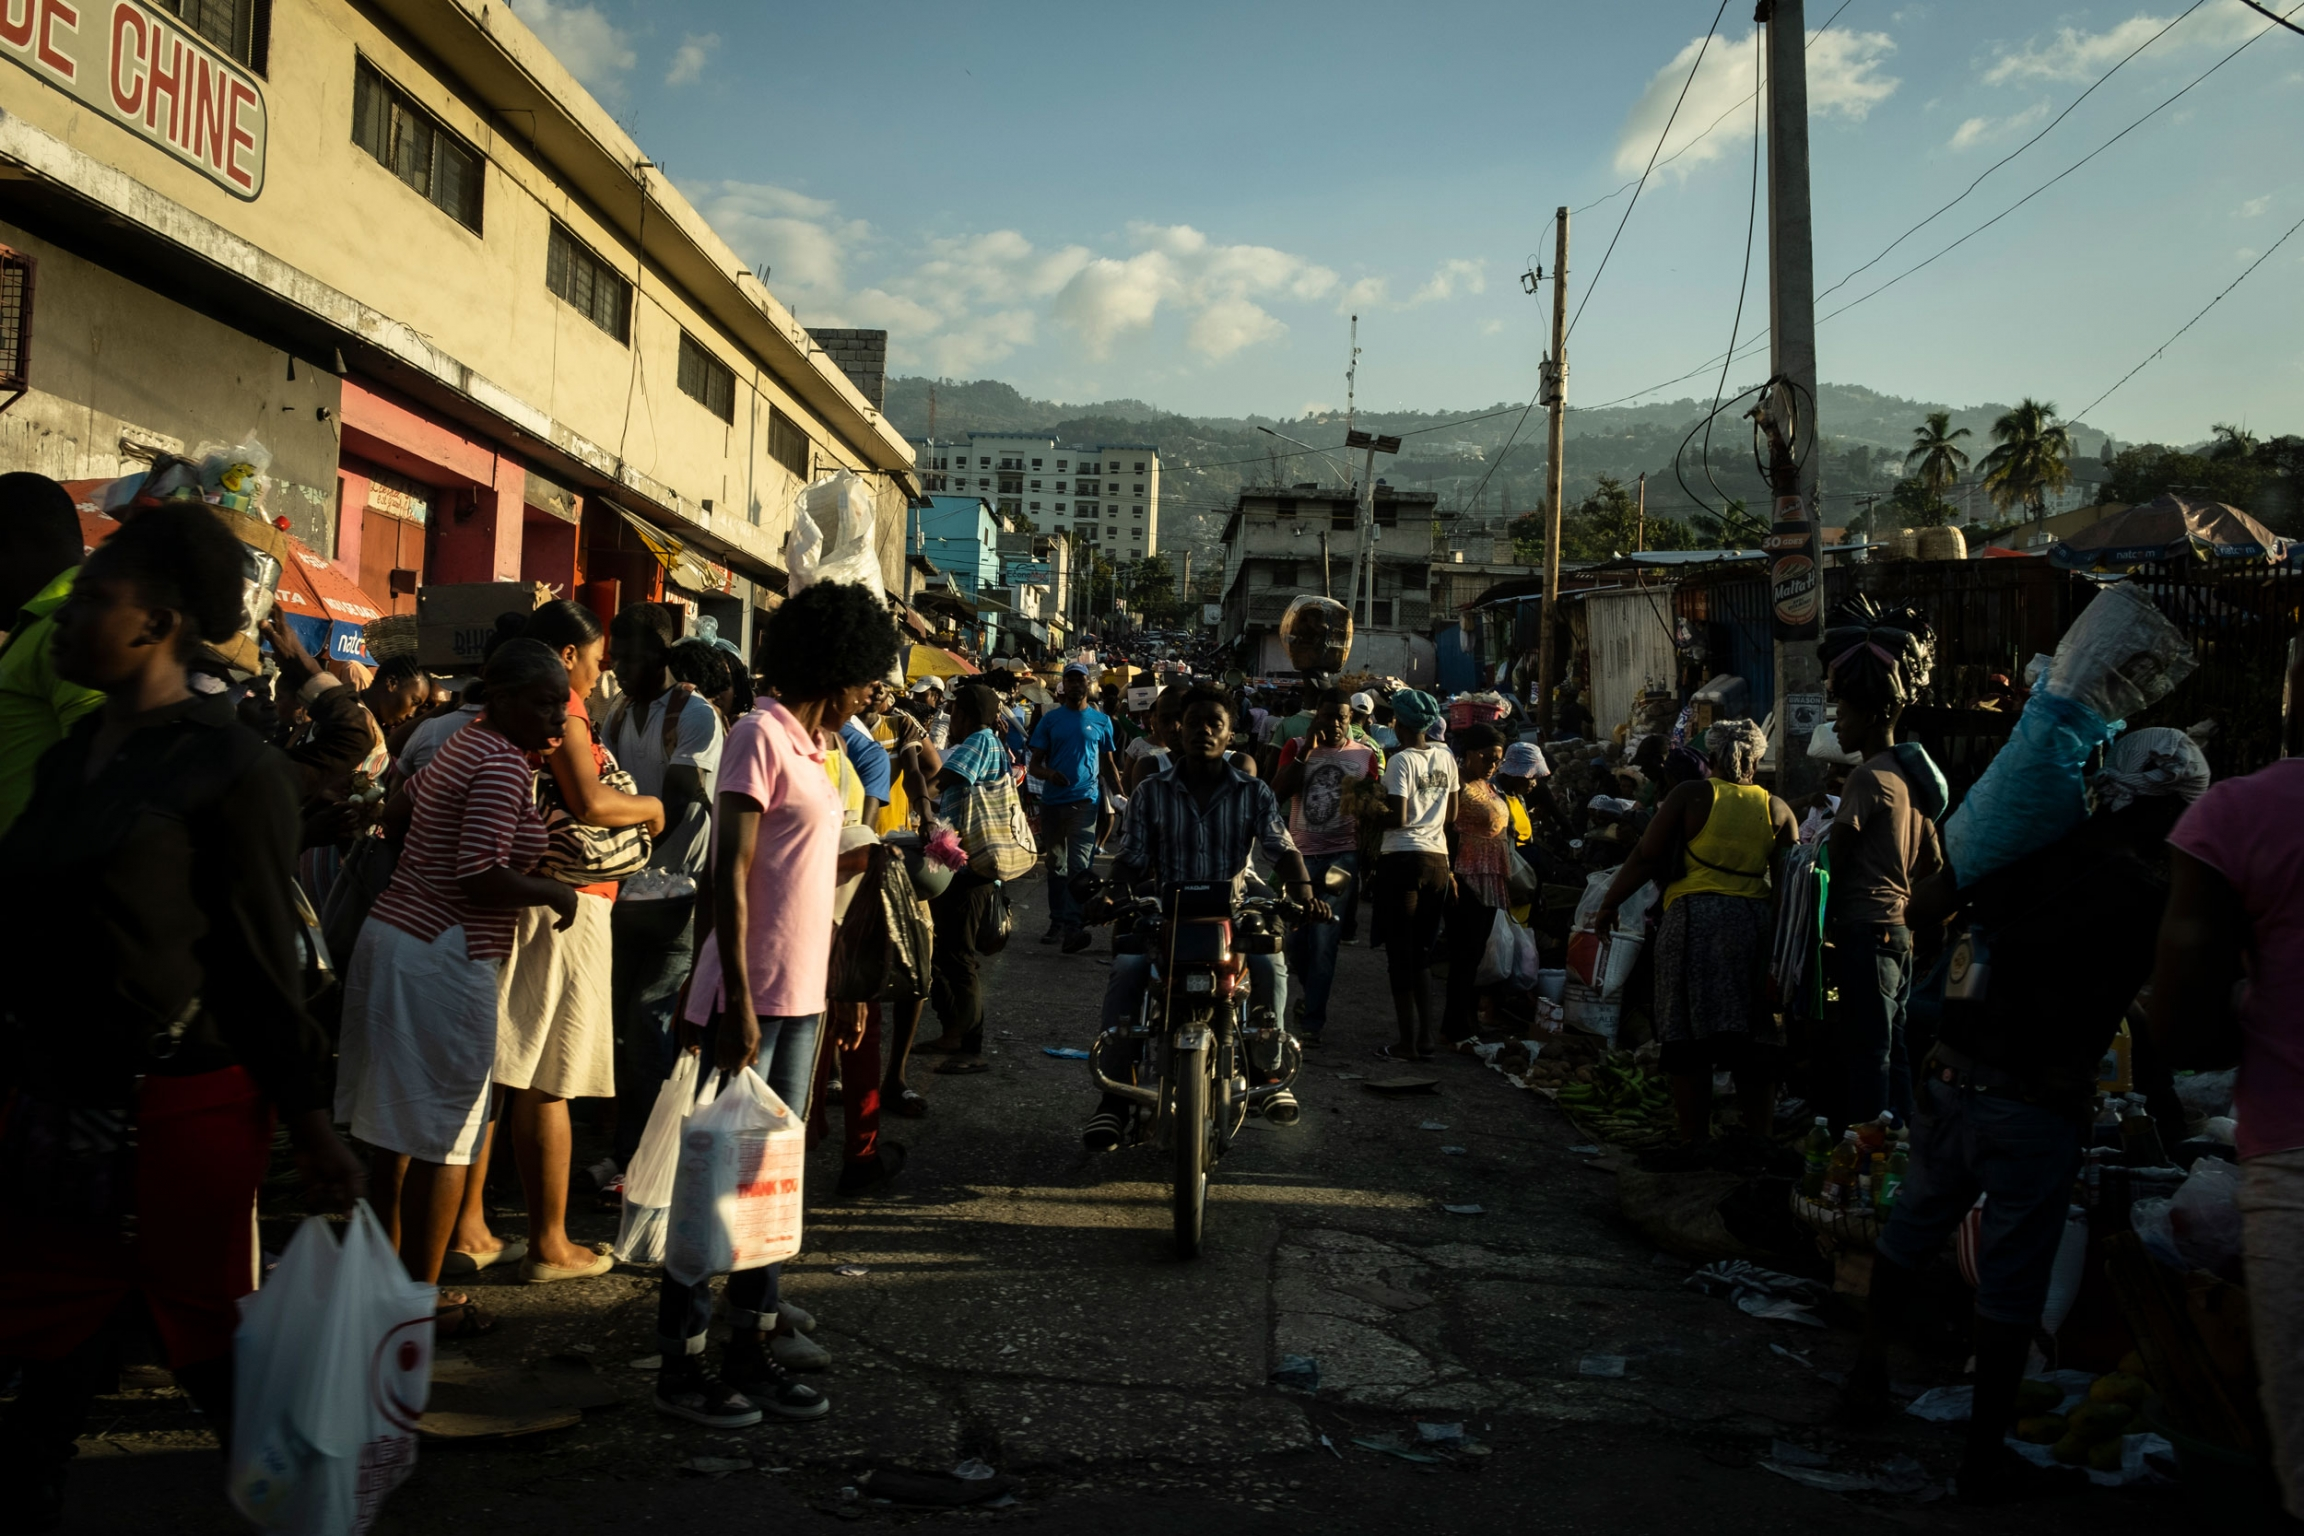 A crowd of people are shown at a Haitian market in Port-au-Prince with a person on a motorcycle in the middle.